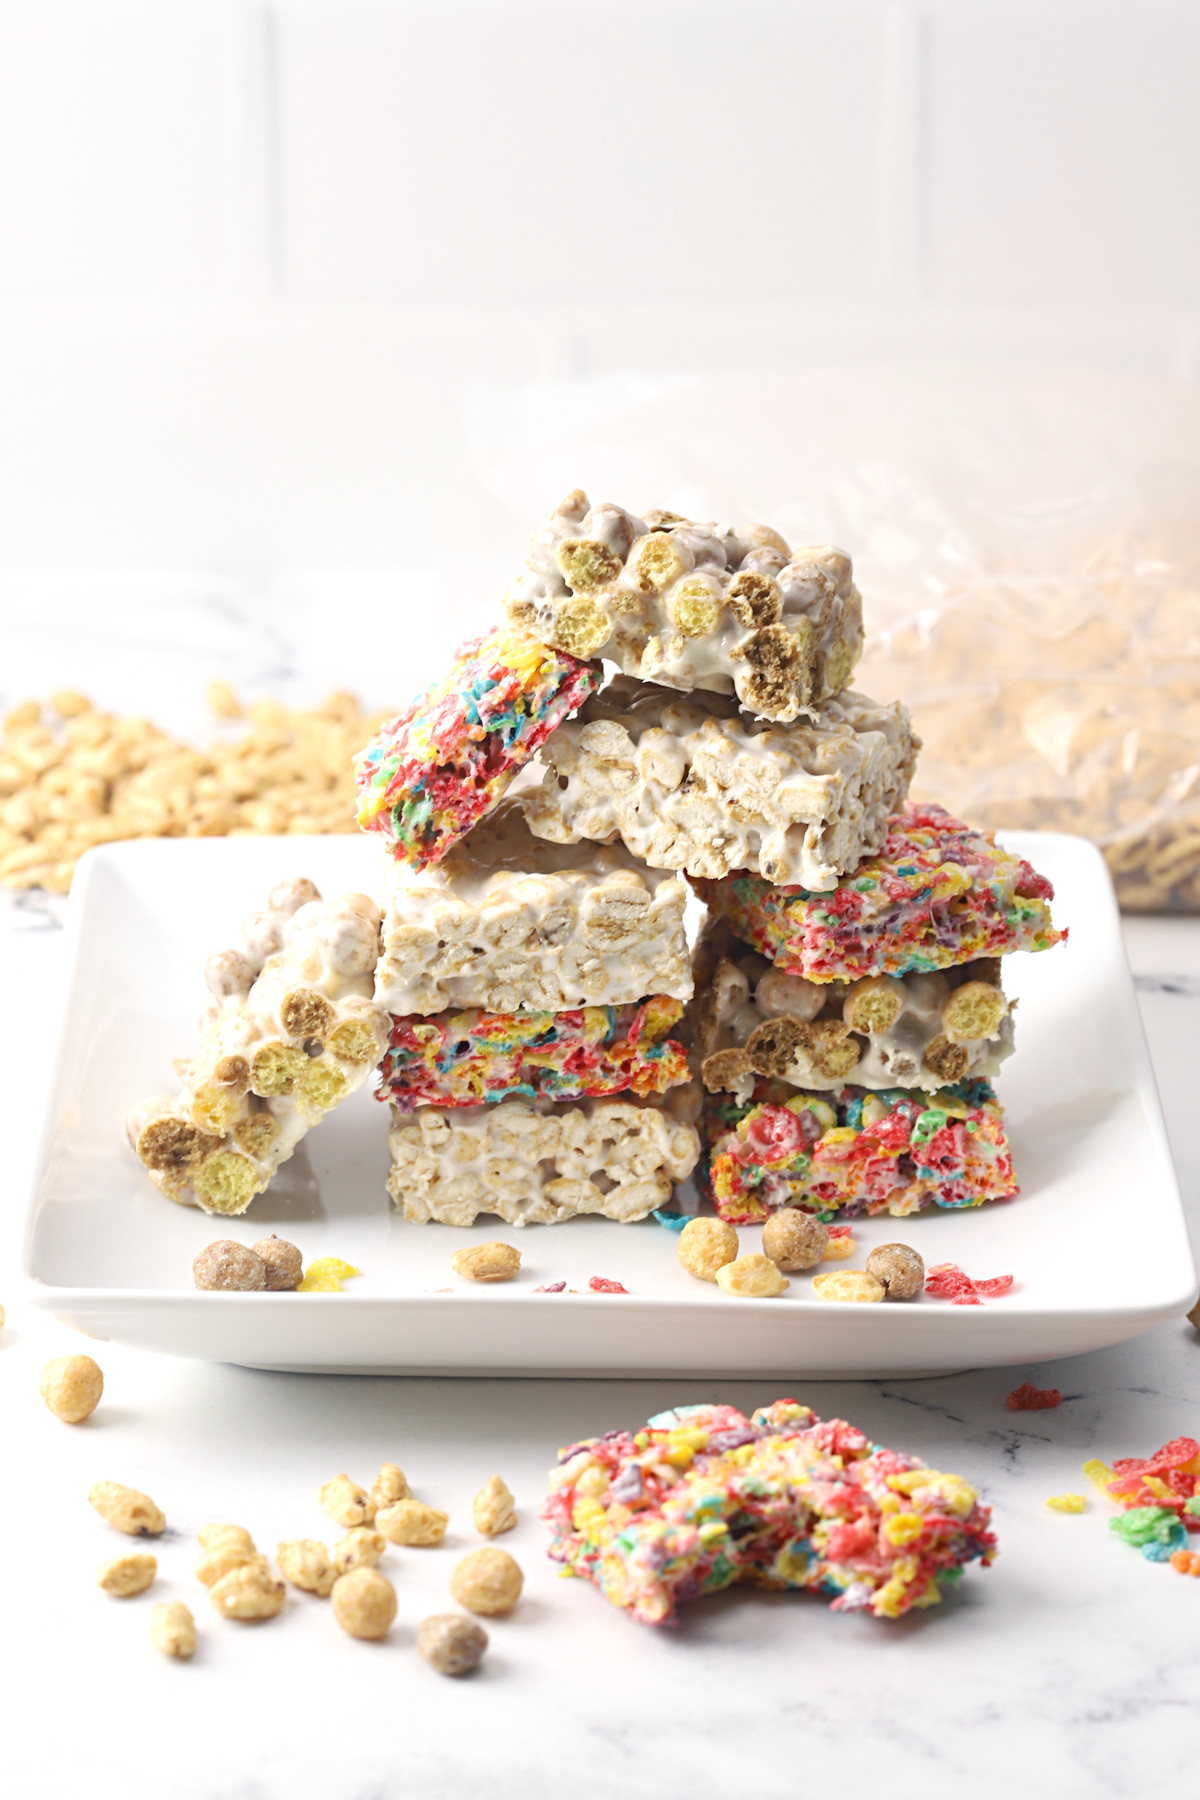 A white plate stacked with cereal marshmallow treats.